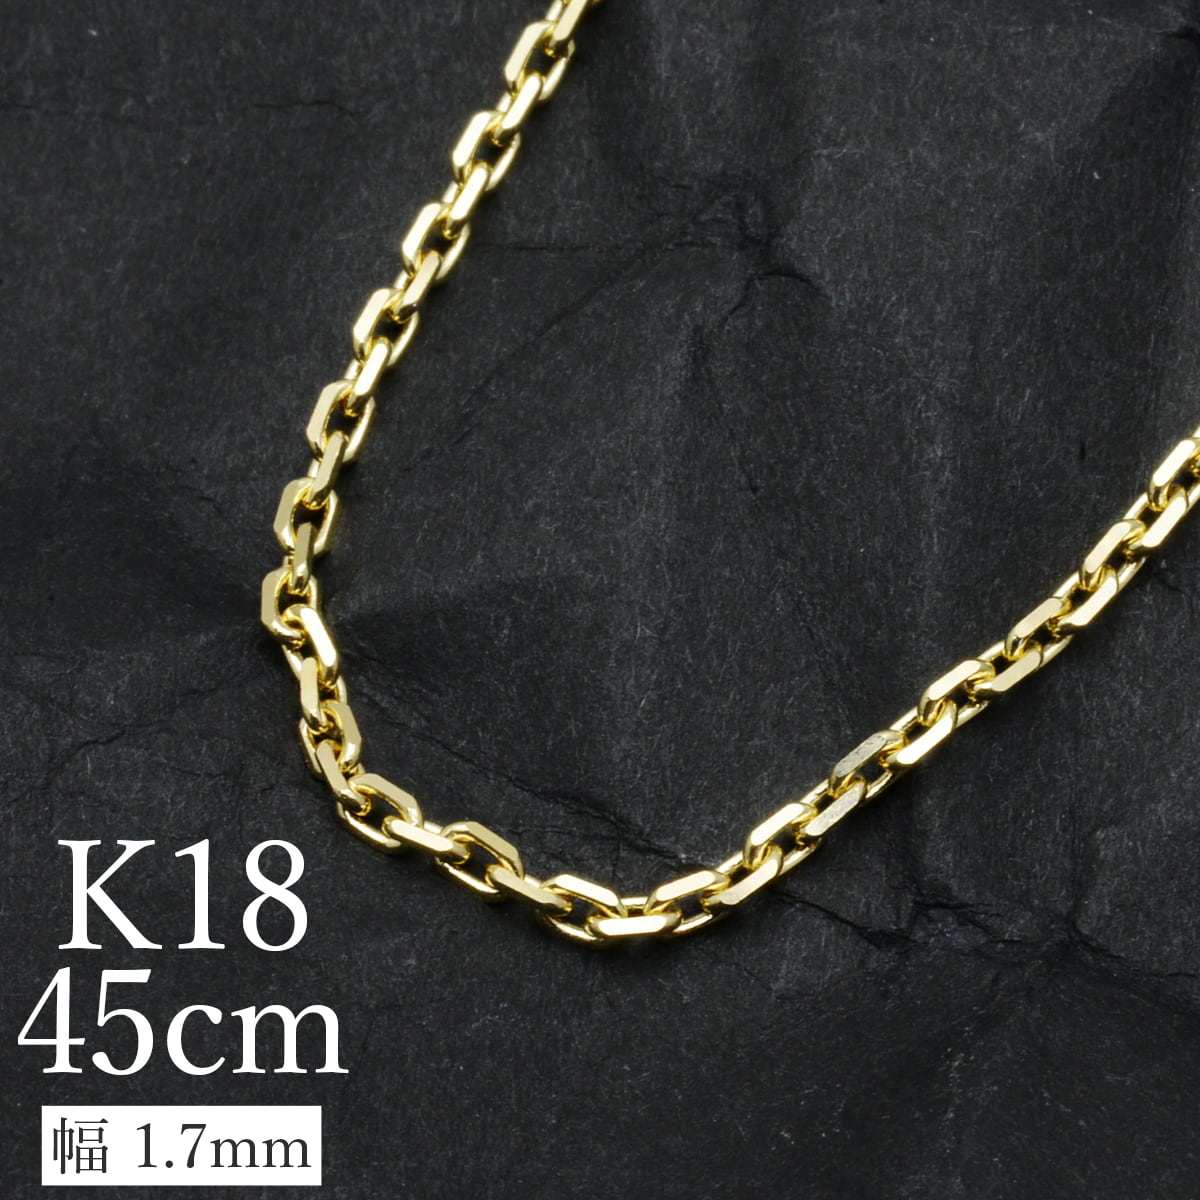 k18ネックレス K18 イエローゴールド メンズ 男性 カットアズキチェーン 幅1.7mm チェーン 45cm/ プレゼント ギフト gold necklace ach1661c45